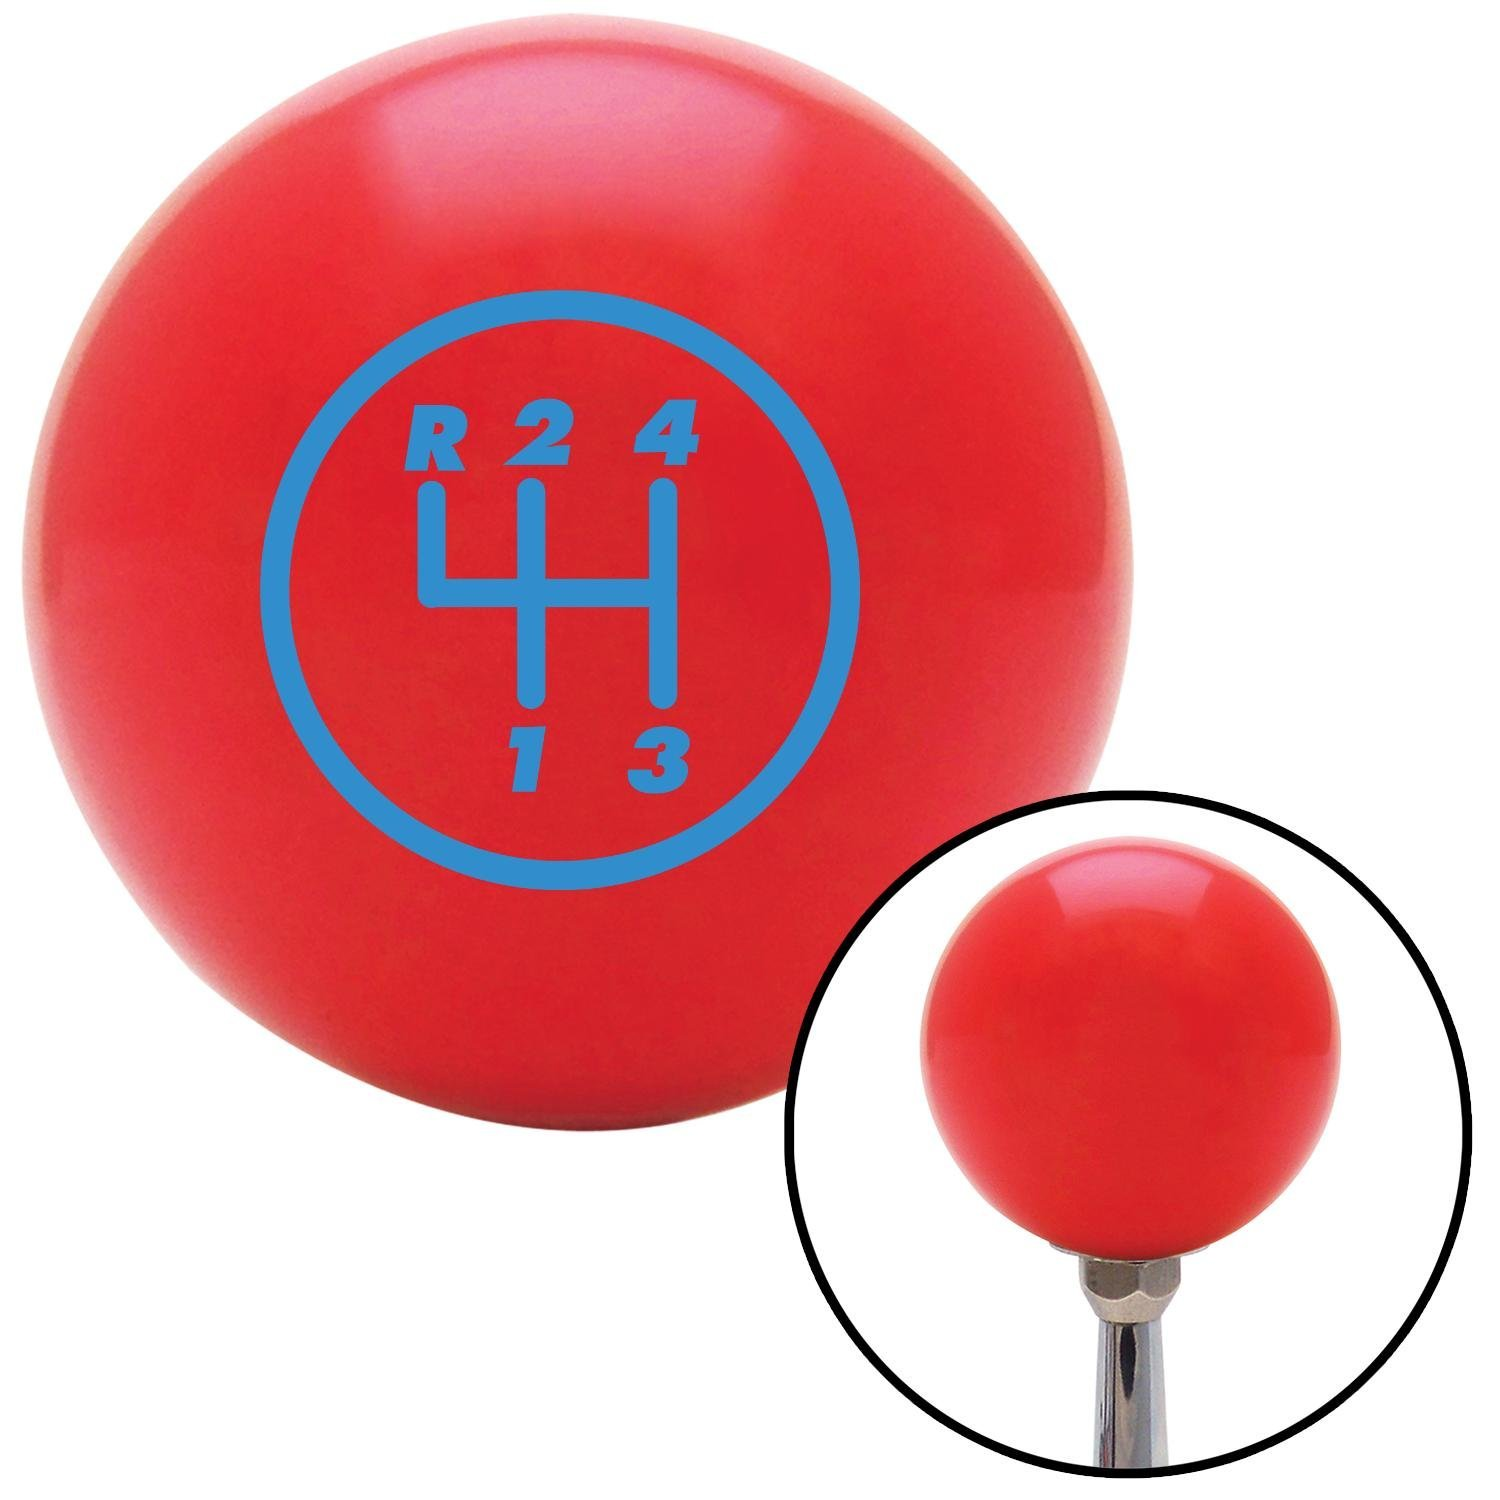 American Shifter 99696 Red Shift Knob with M16 x 1.5 Insert Blue 4 Speed Shift Pattern - 4RUL